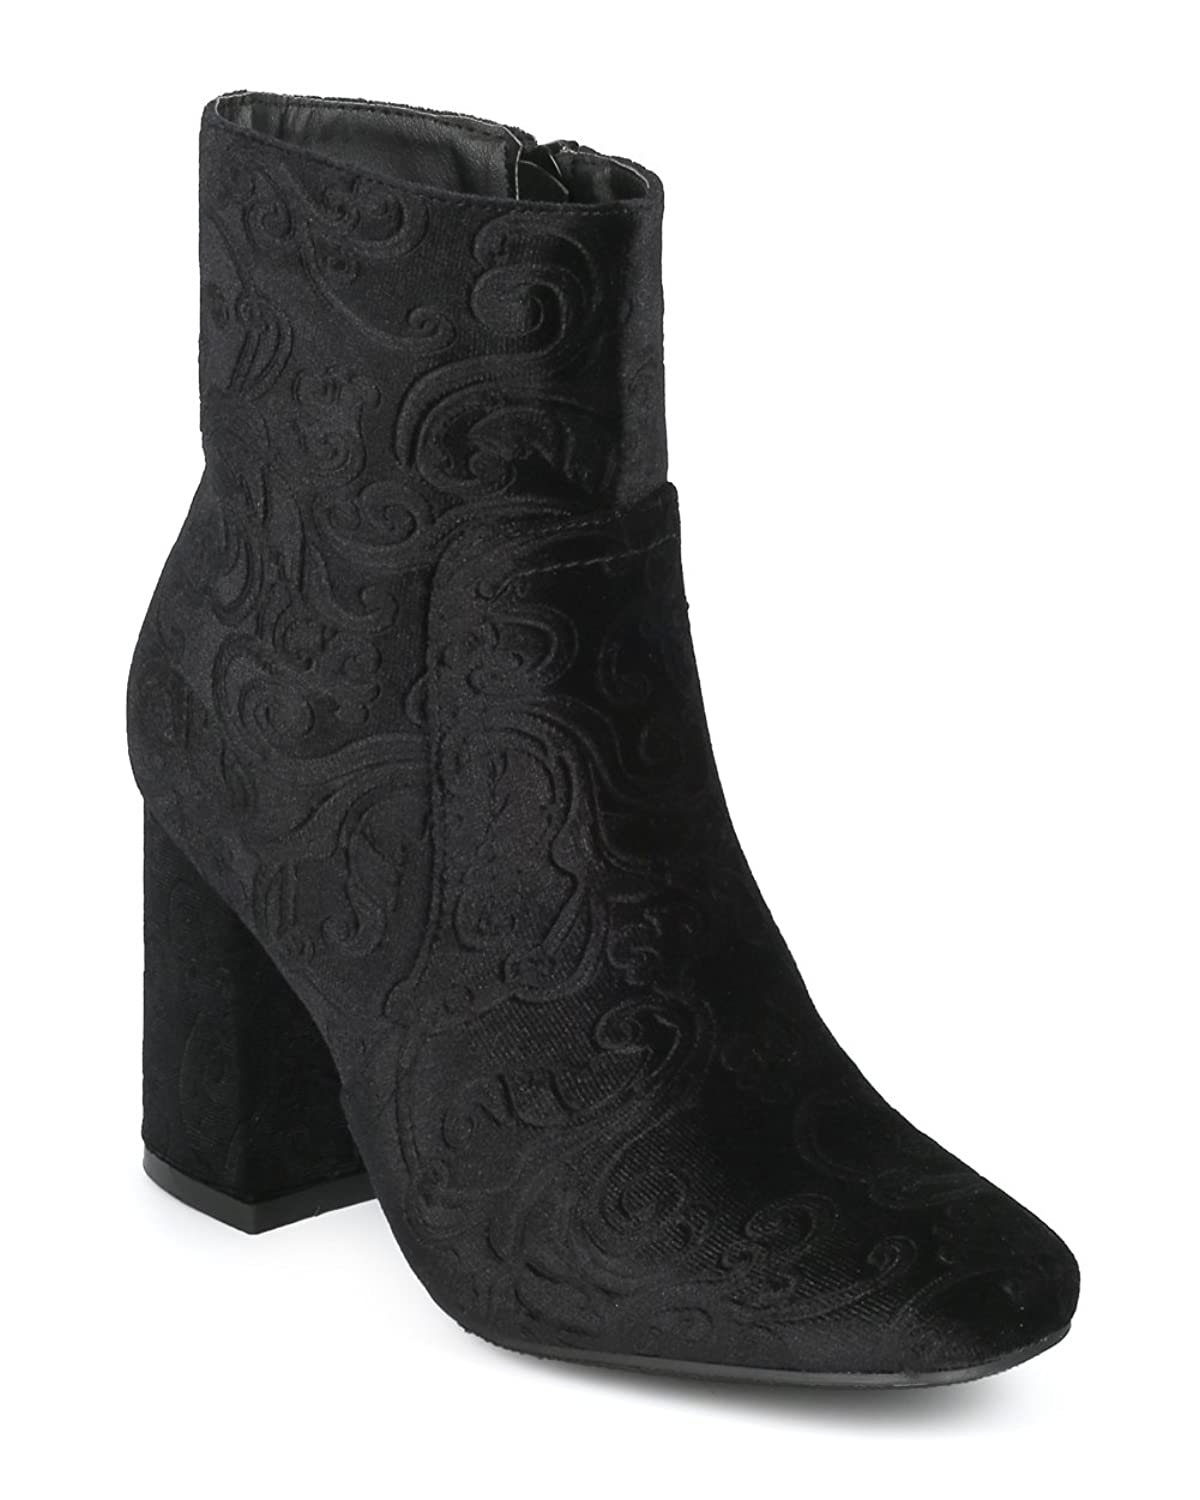 Women Embossed Chunky Heel Ankle Heel Bootie - Casual Dressy Versatile Everyday Boot - HE77 by Refresh Collection